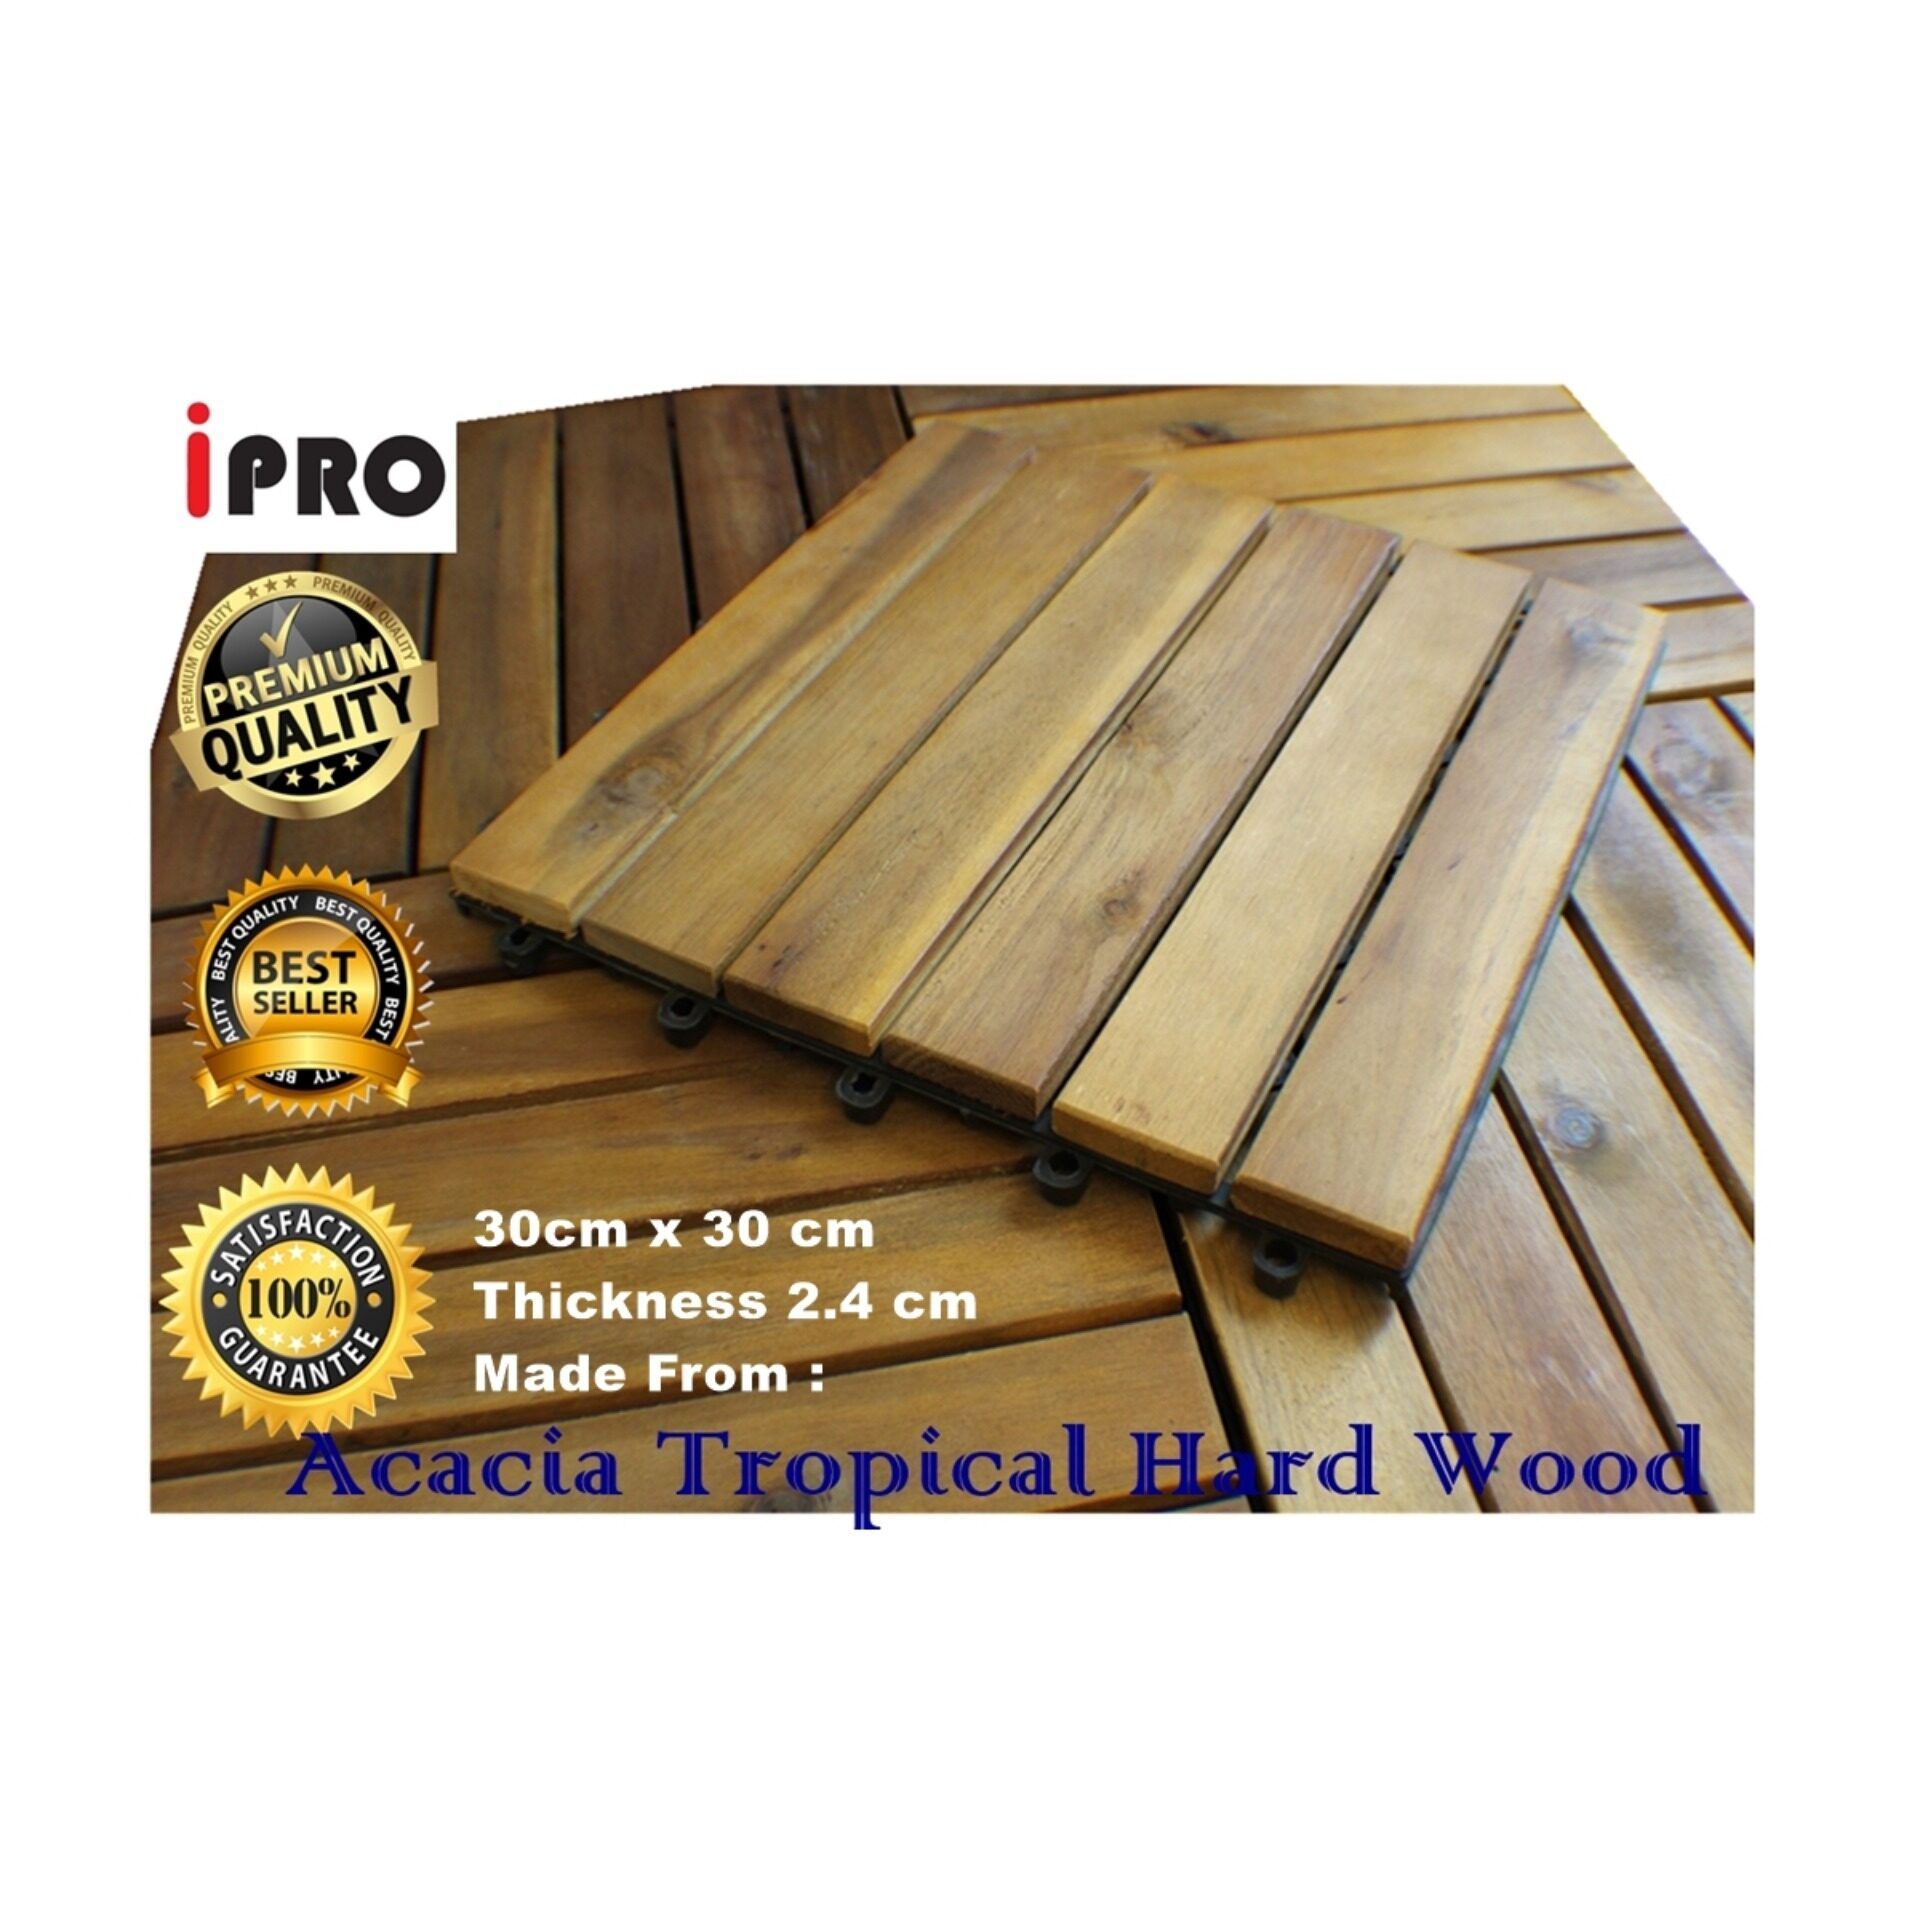 IPRO 1 Pcs Acacia Wood Floor Decking Timber Deck tile, Garden Decoration Flooring, Hard Wooden Floor (2.4 cm thickness) DIY Kayu Lantai , Carpet - Wood, Outdoor, Natural wood Finishing, Original Solid Acacia Hard Wood